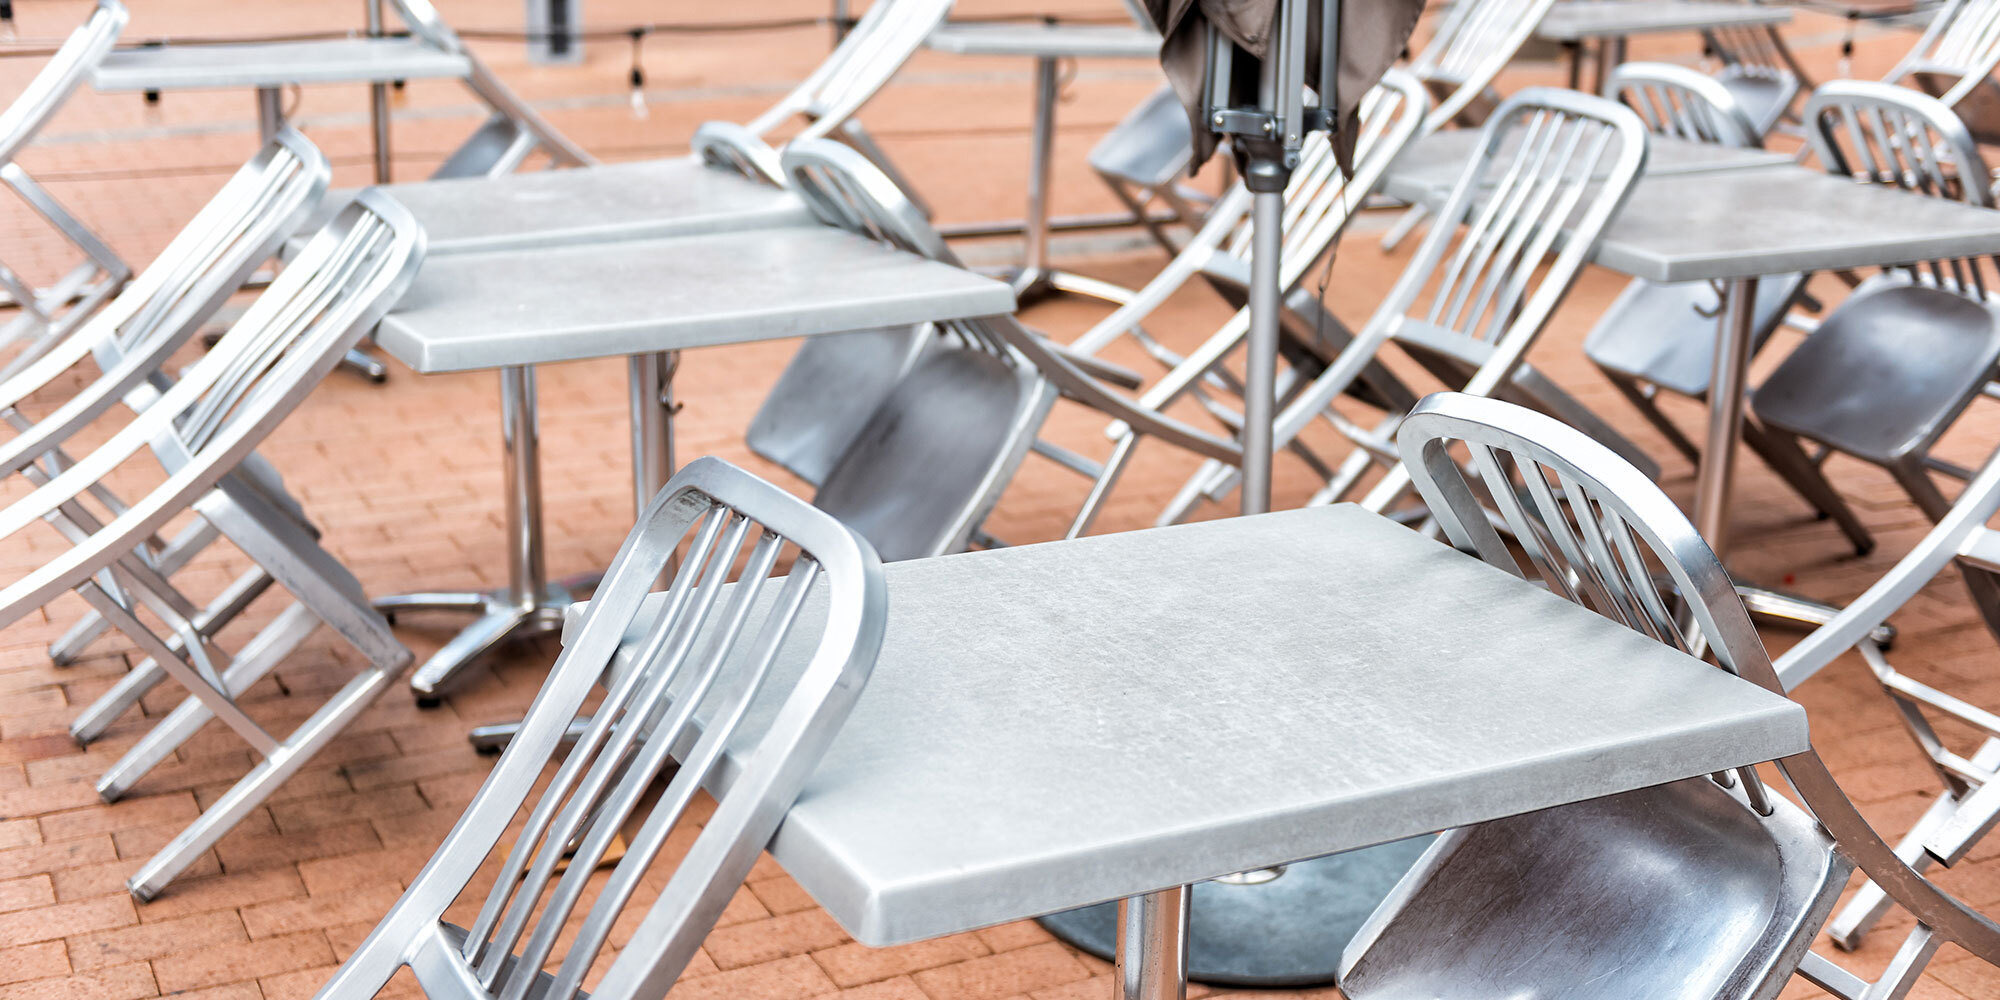 Many silver steel tables and chairs in closed cafe restaurant pattern outside outdoors, nobody, on street, closed umbrella